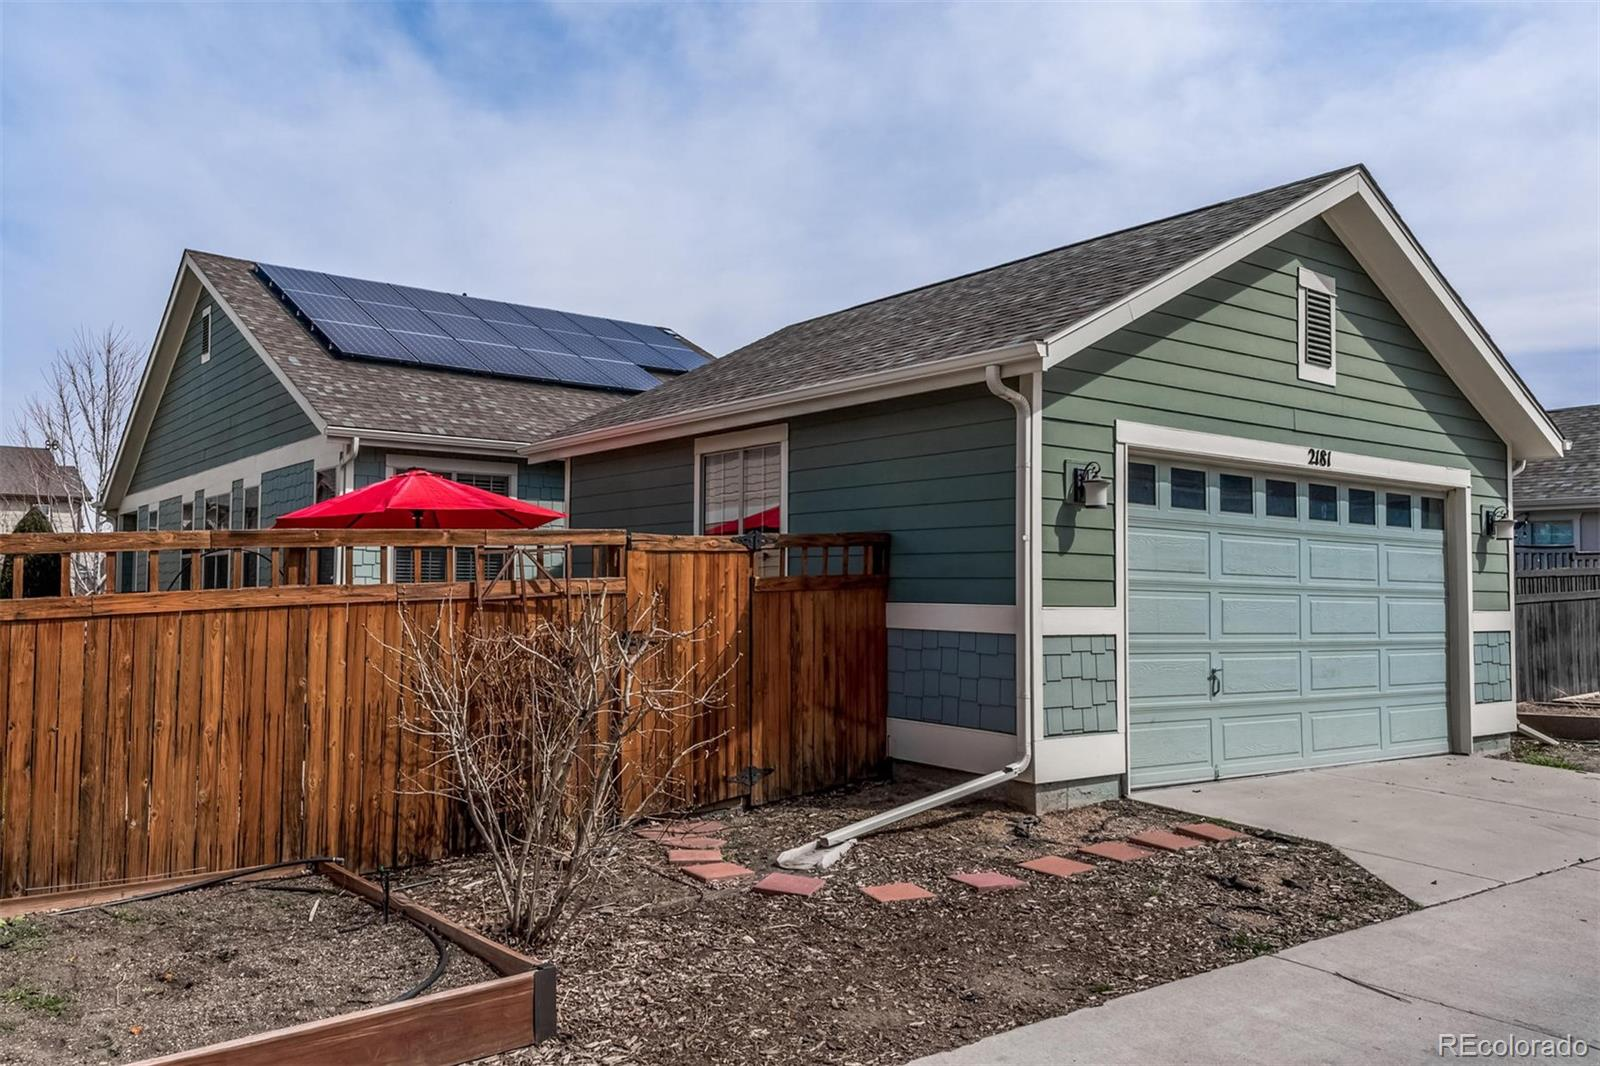 MLS# 1732893 - 2181 Willow Court, Denver, CO 80238